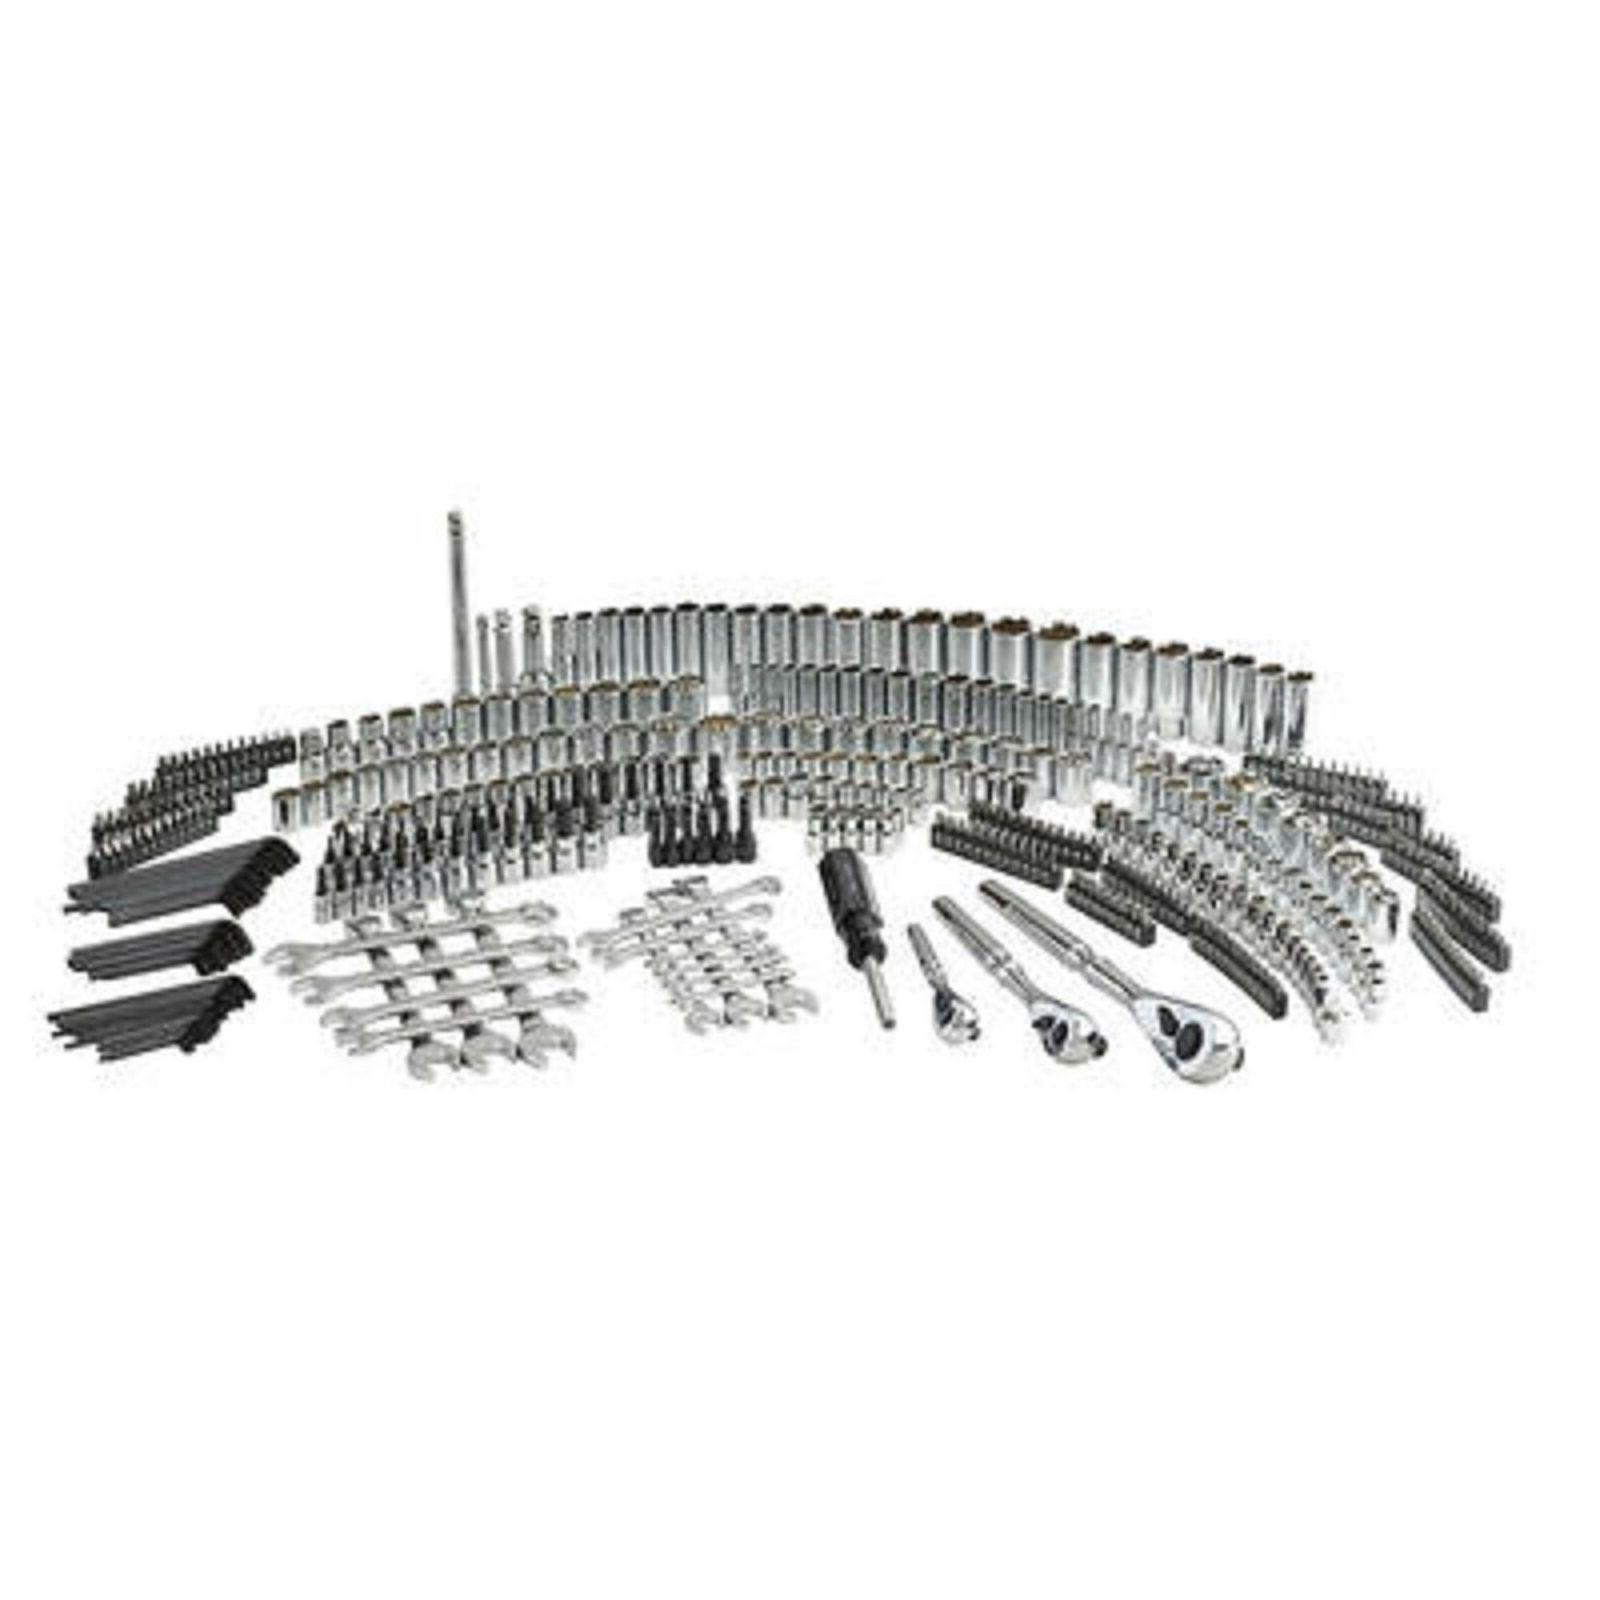 New Craftsman Mechanic's Tool Set With 3 450pc